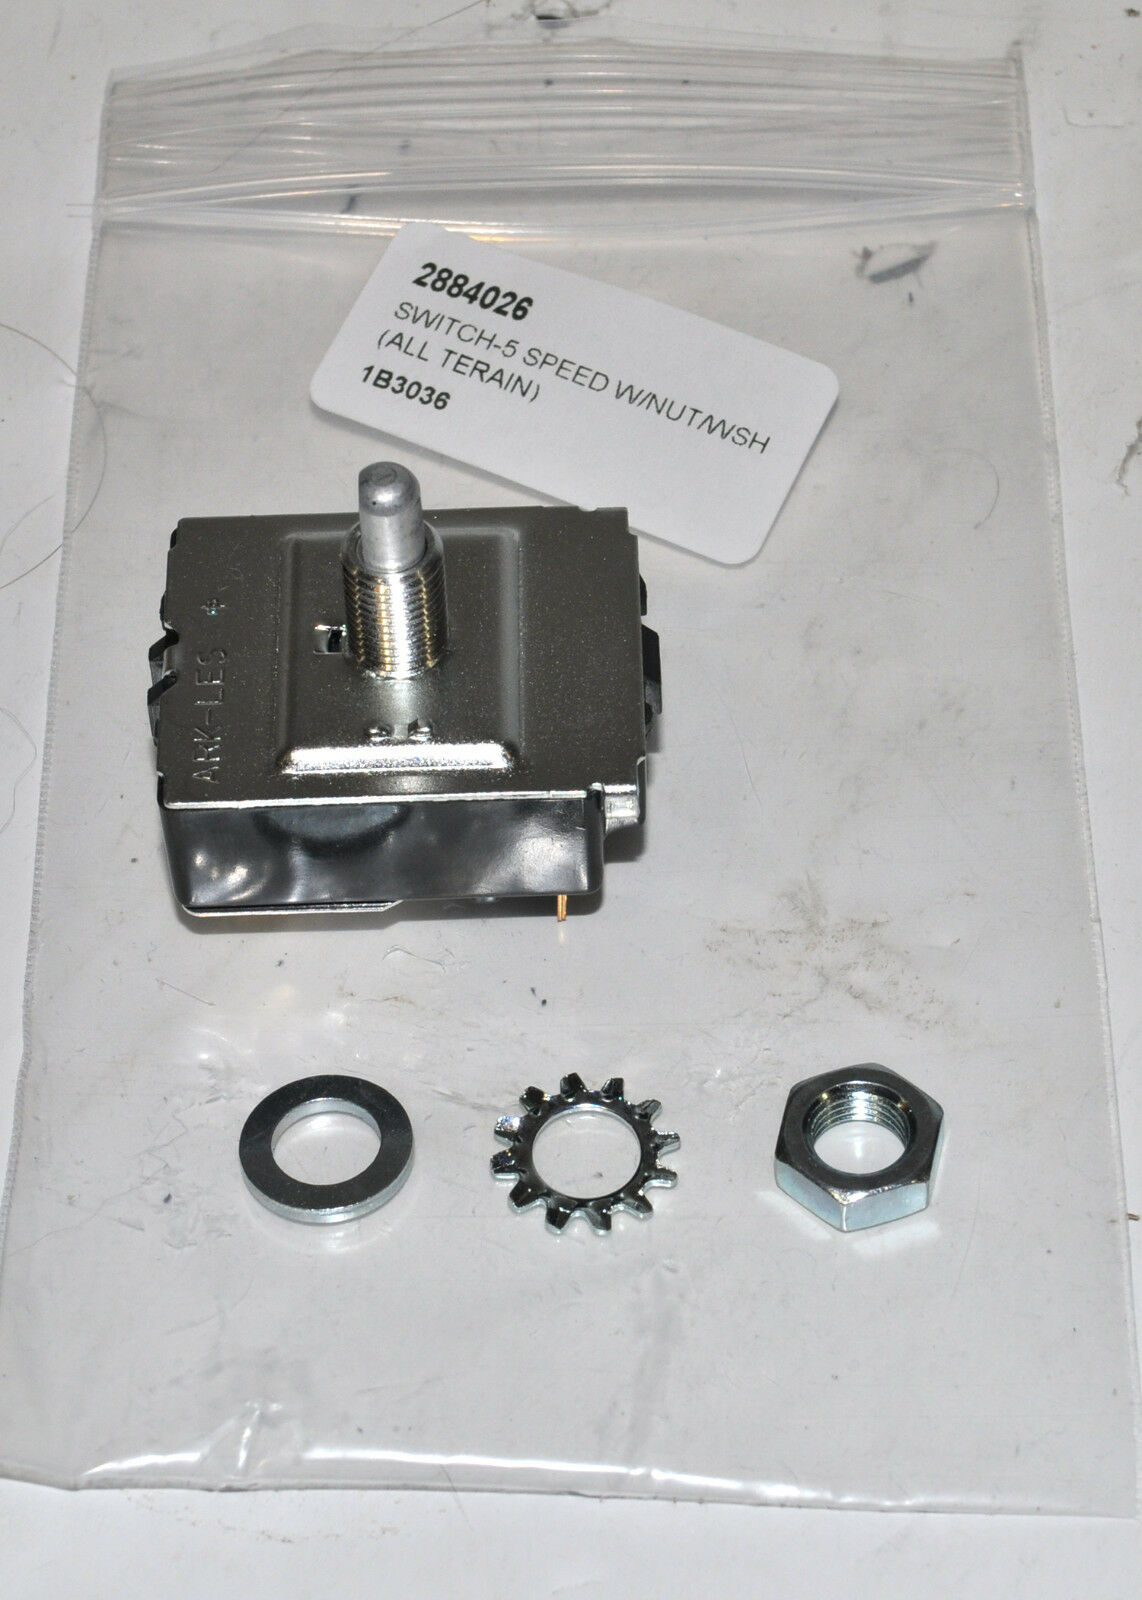 Minn Kota 5 Speed Foot Pedal Switch 2884026 Ebay Wiring Diagram Item 4 Oem Spd W Nut Washer Part